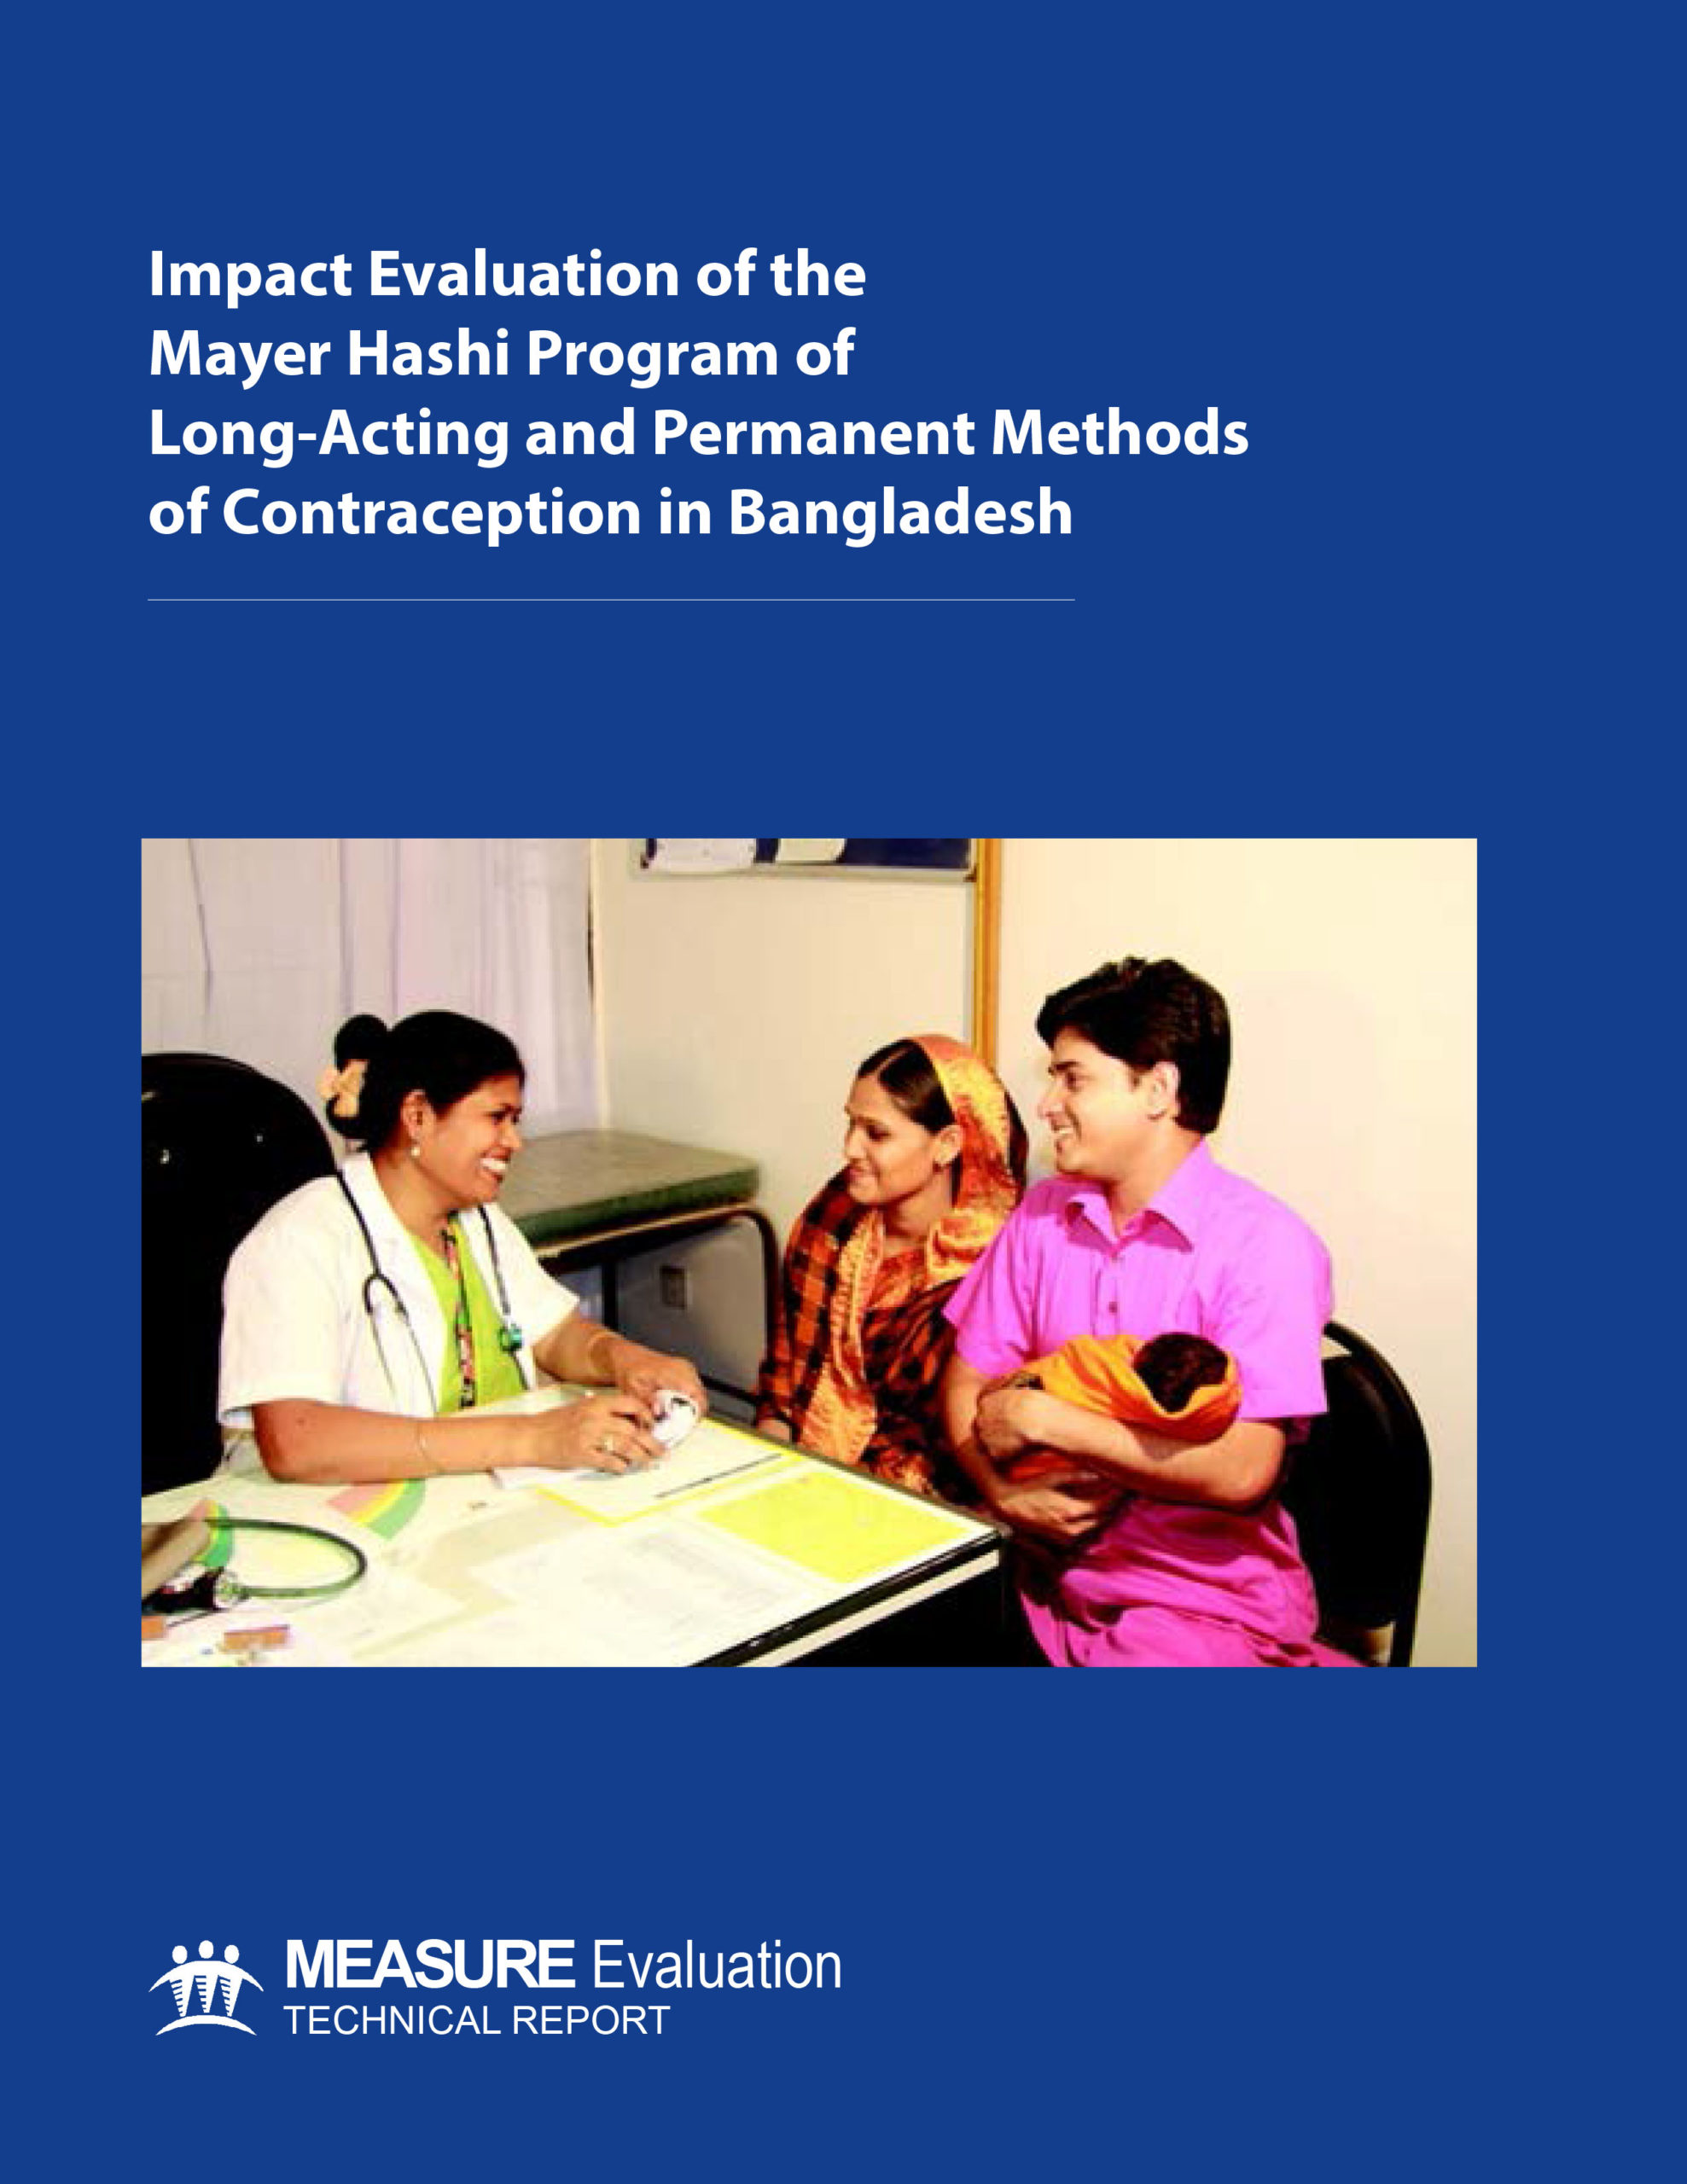 Impact Evaluation of the Mayer Hashi Program of Long-Acting and Permanent Methods of Contraception in Bangladesh